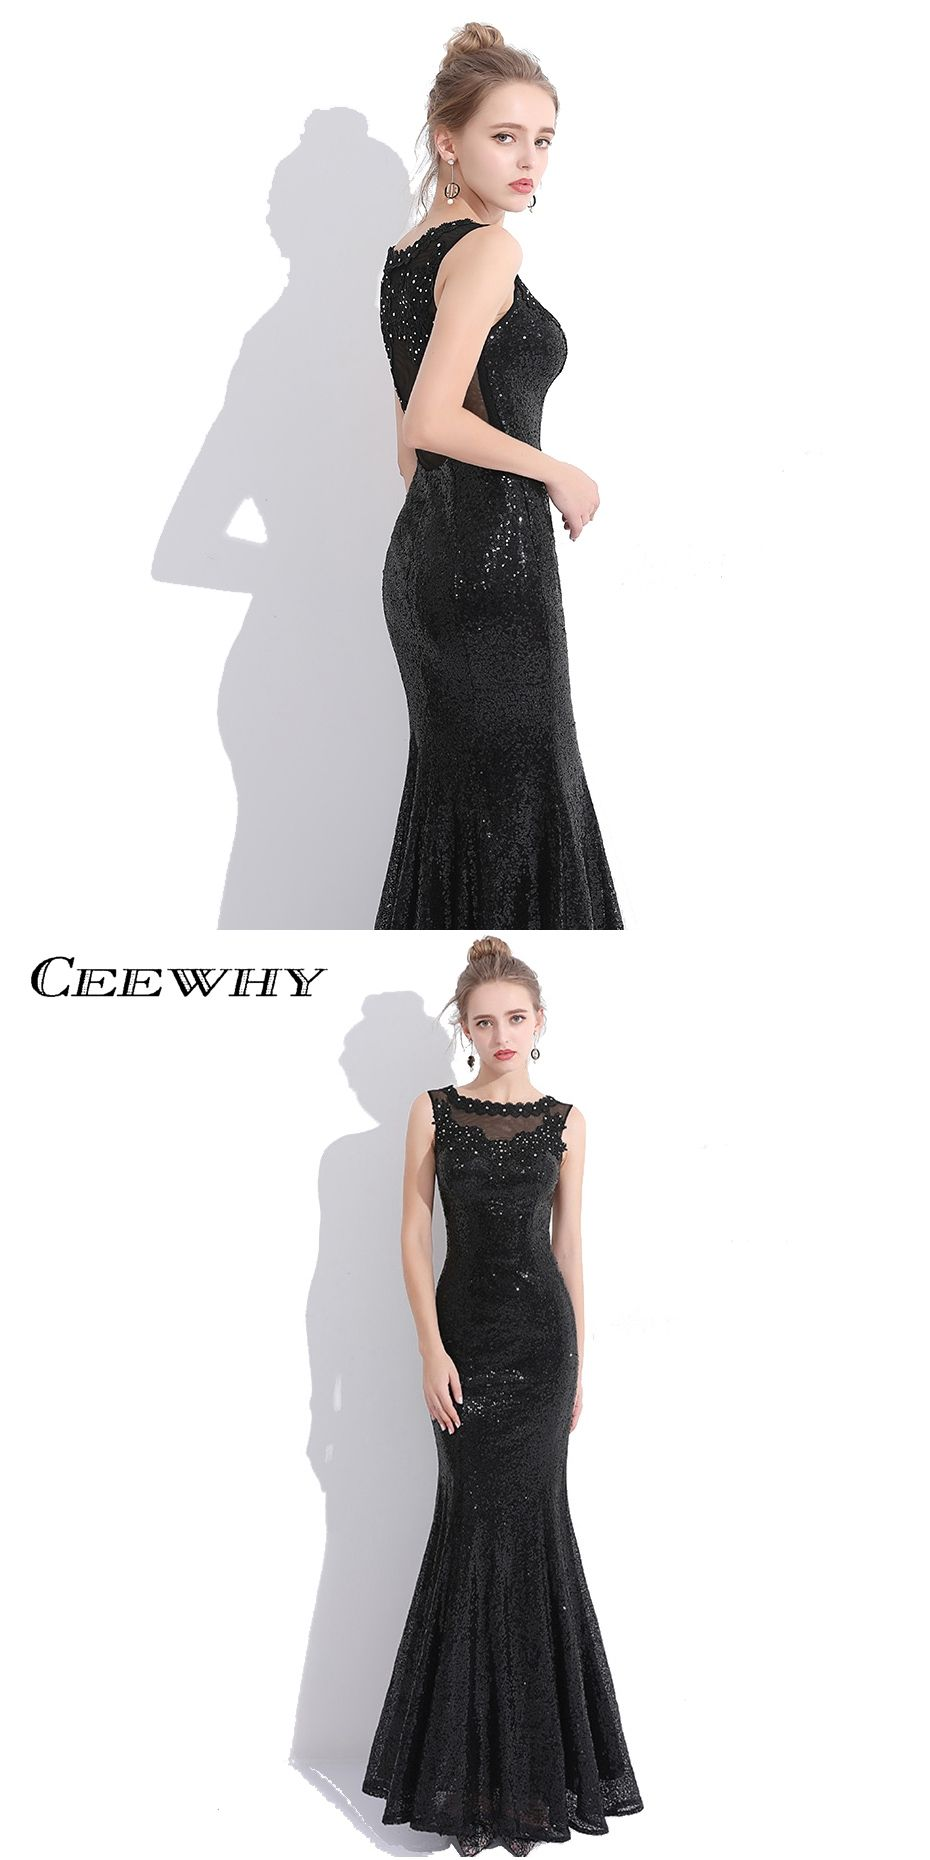 CEEWHY Luxury Embroidery Sequined Prom Dresses Mermaid Evening Dresses  Black Evening Gown Robe De Soiree Real 5a7914a5b655